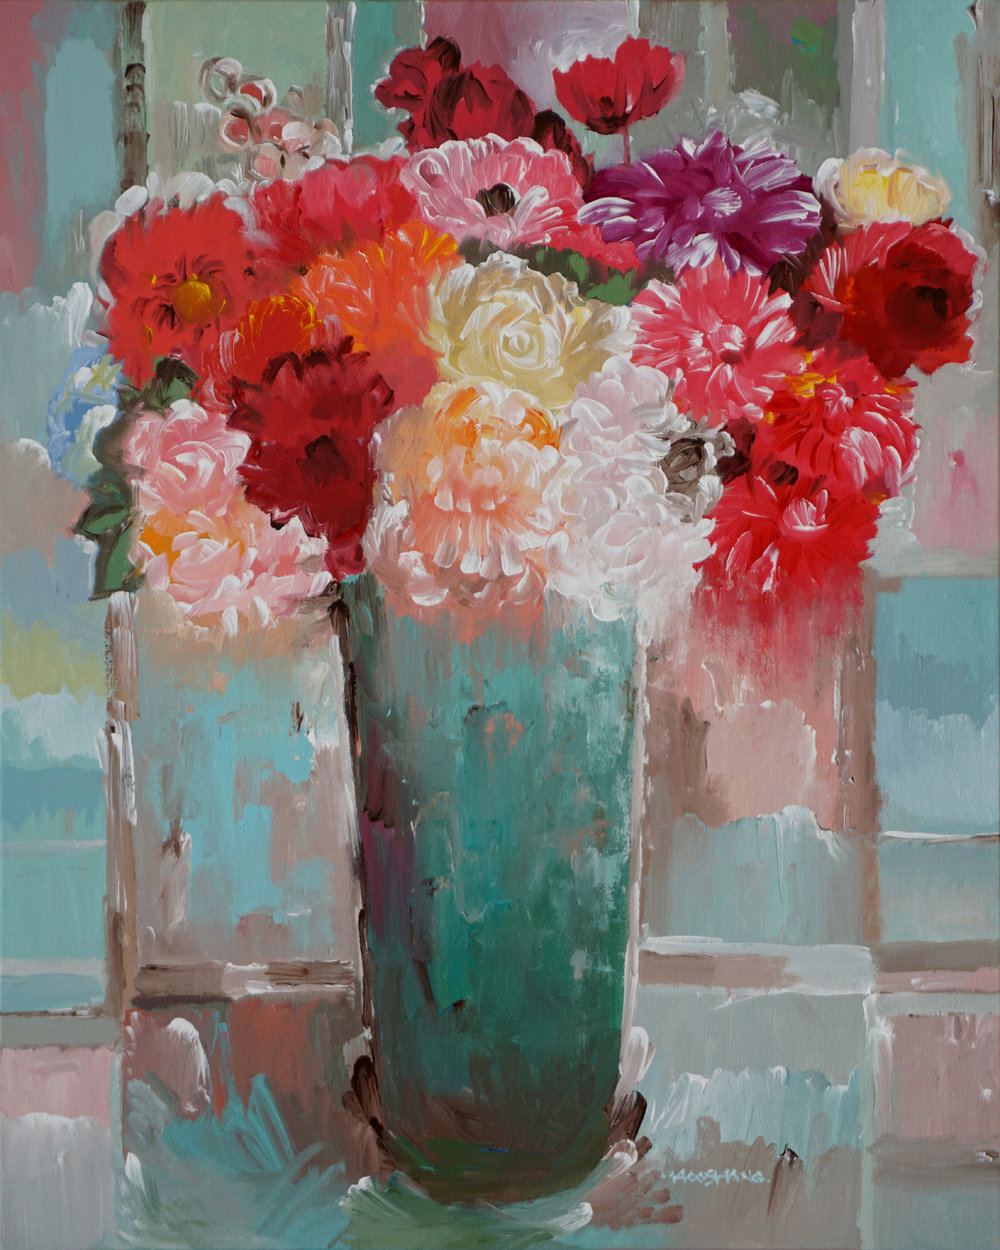 Flowers in a Green Vase, 24x30 inches, acrylic on canvas